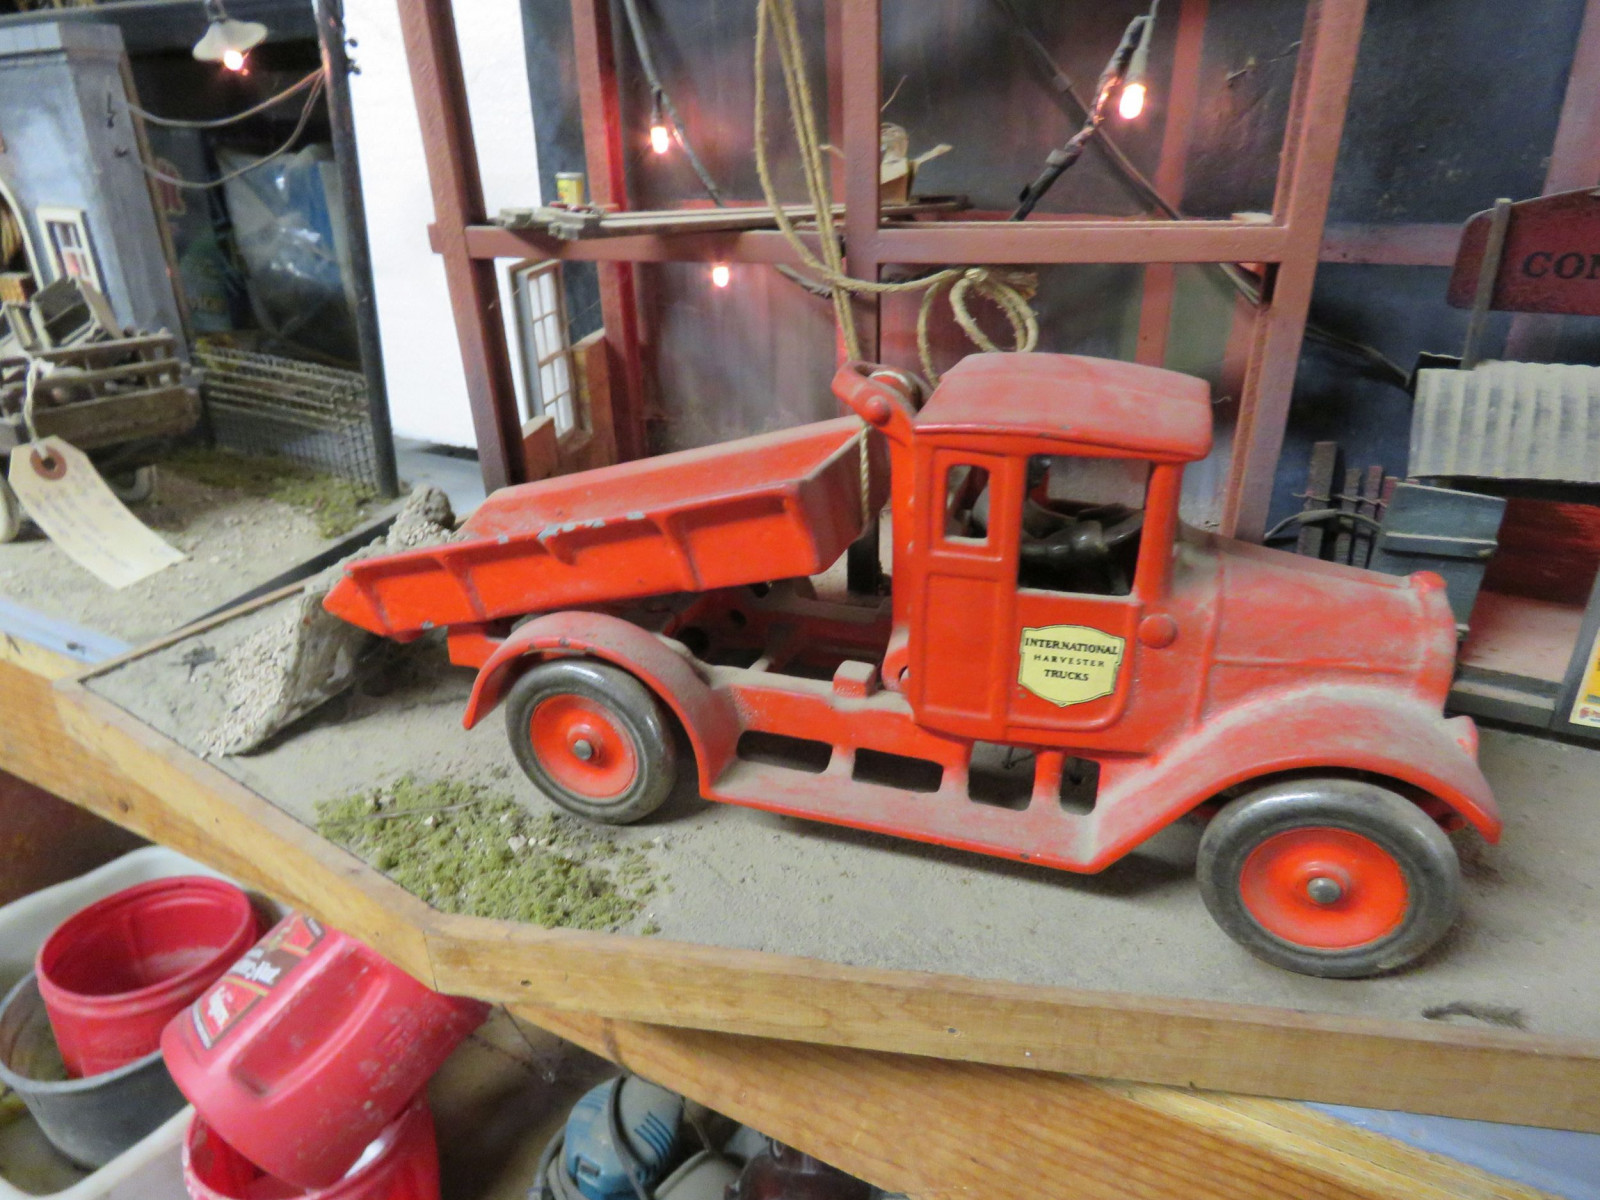 Construction Site Diorama with Vintage Cast Iron Arcade IH Truck - Image 2